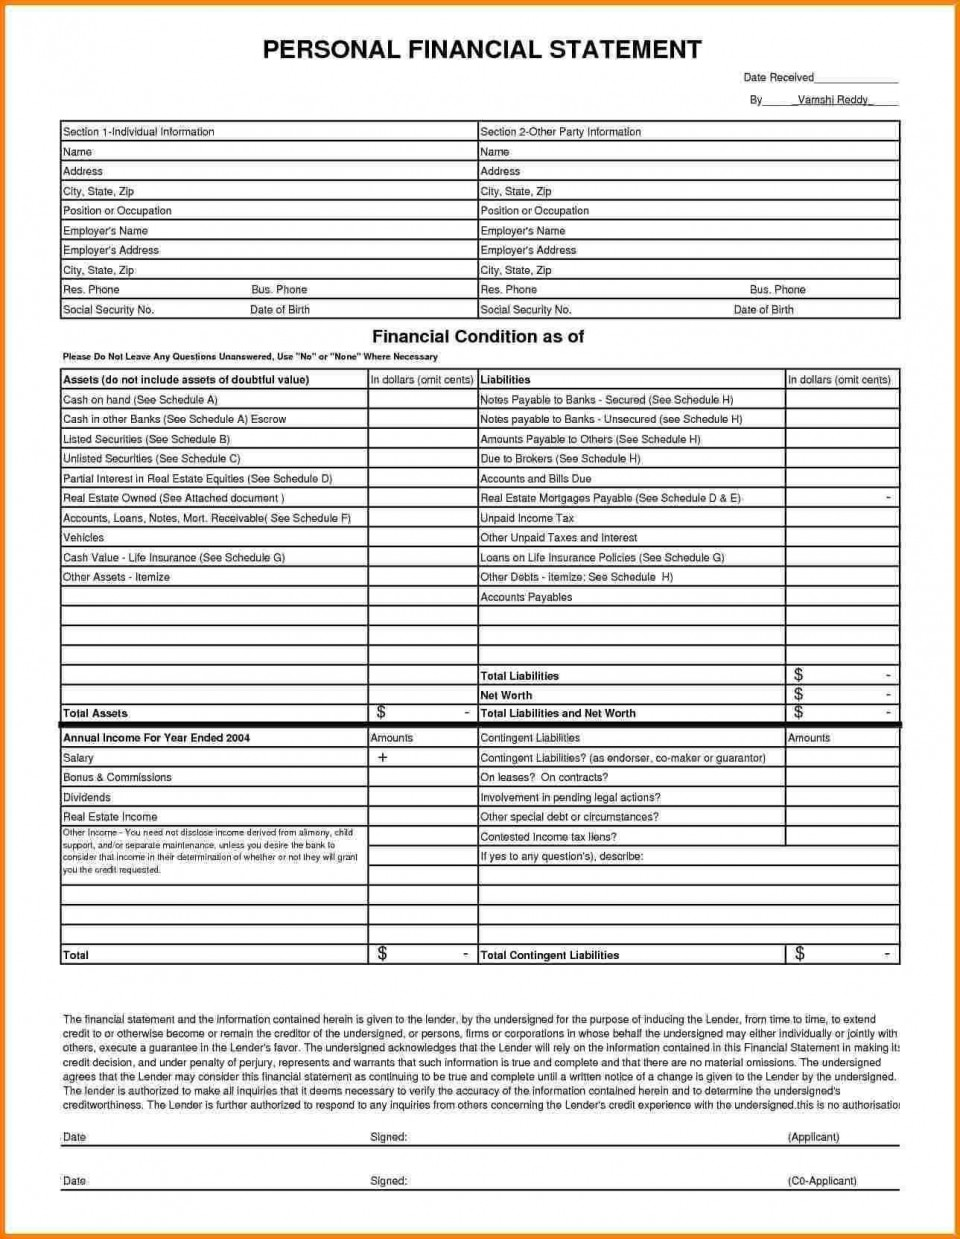 002 Marvelou Bank Statement Excel Format Free Download Image  Of Baroda Stock In India960